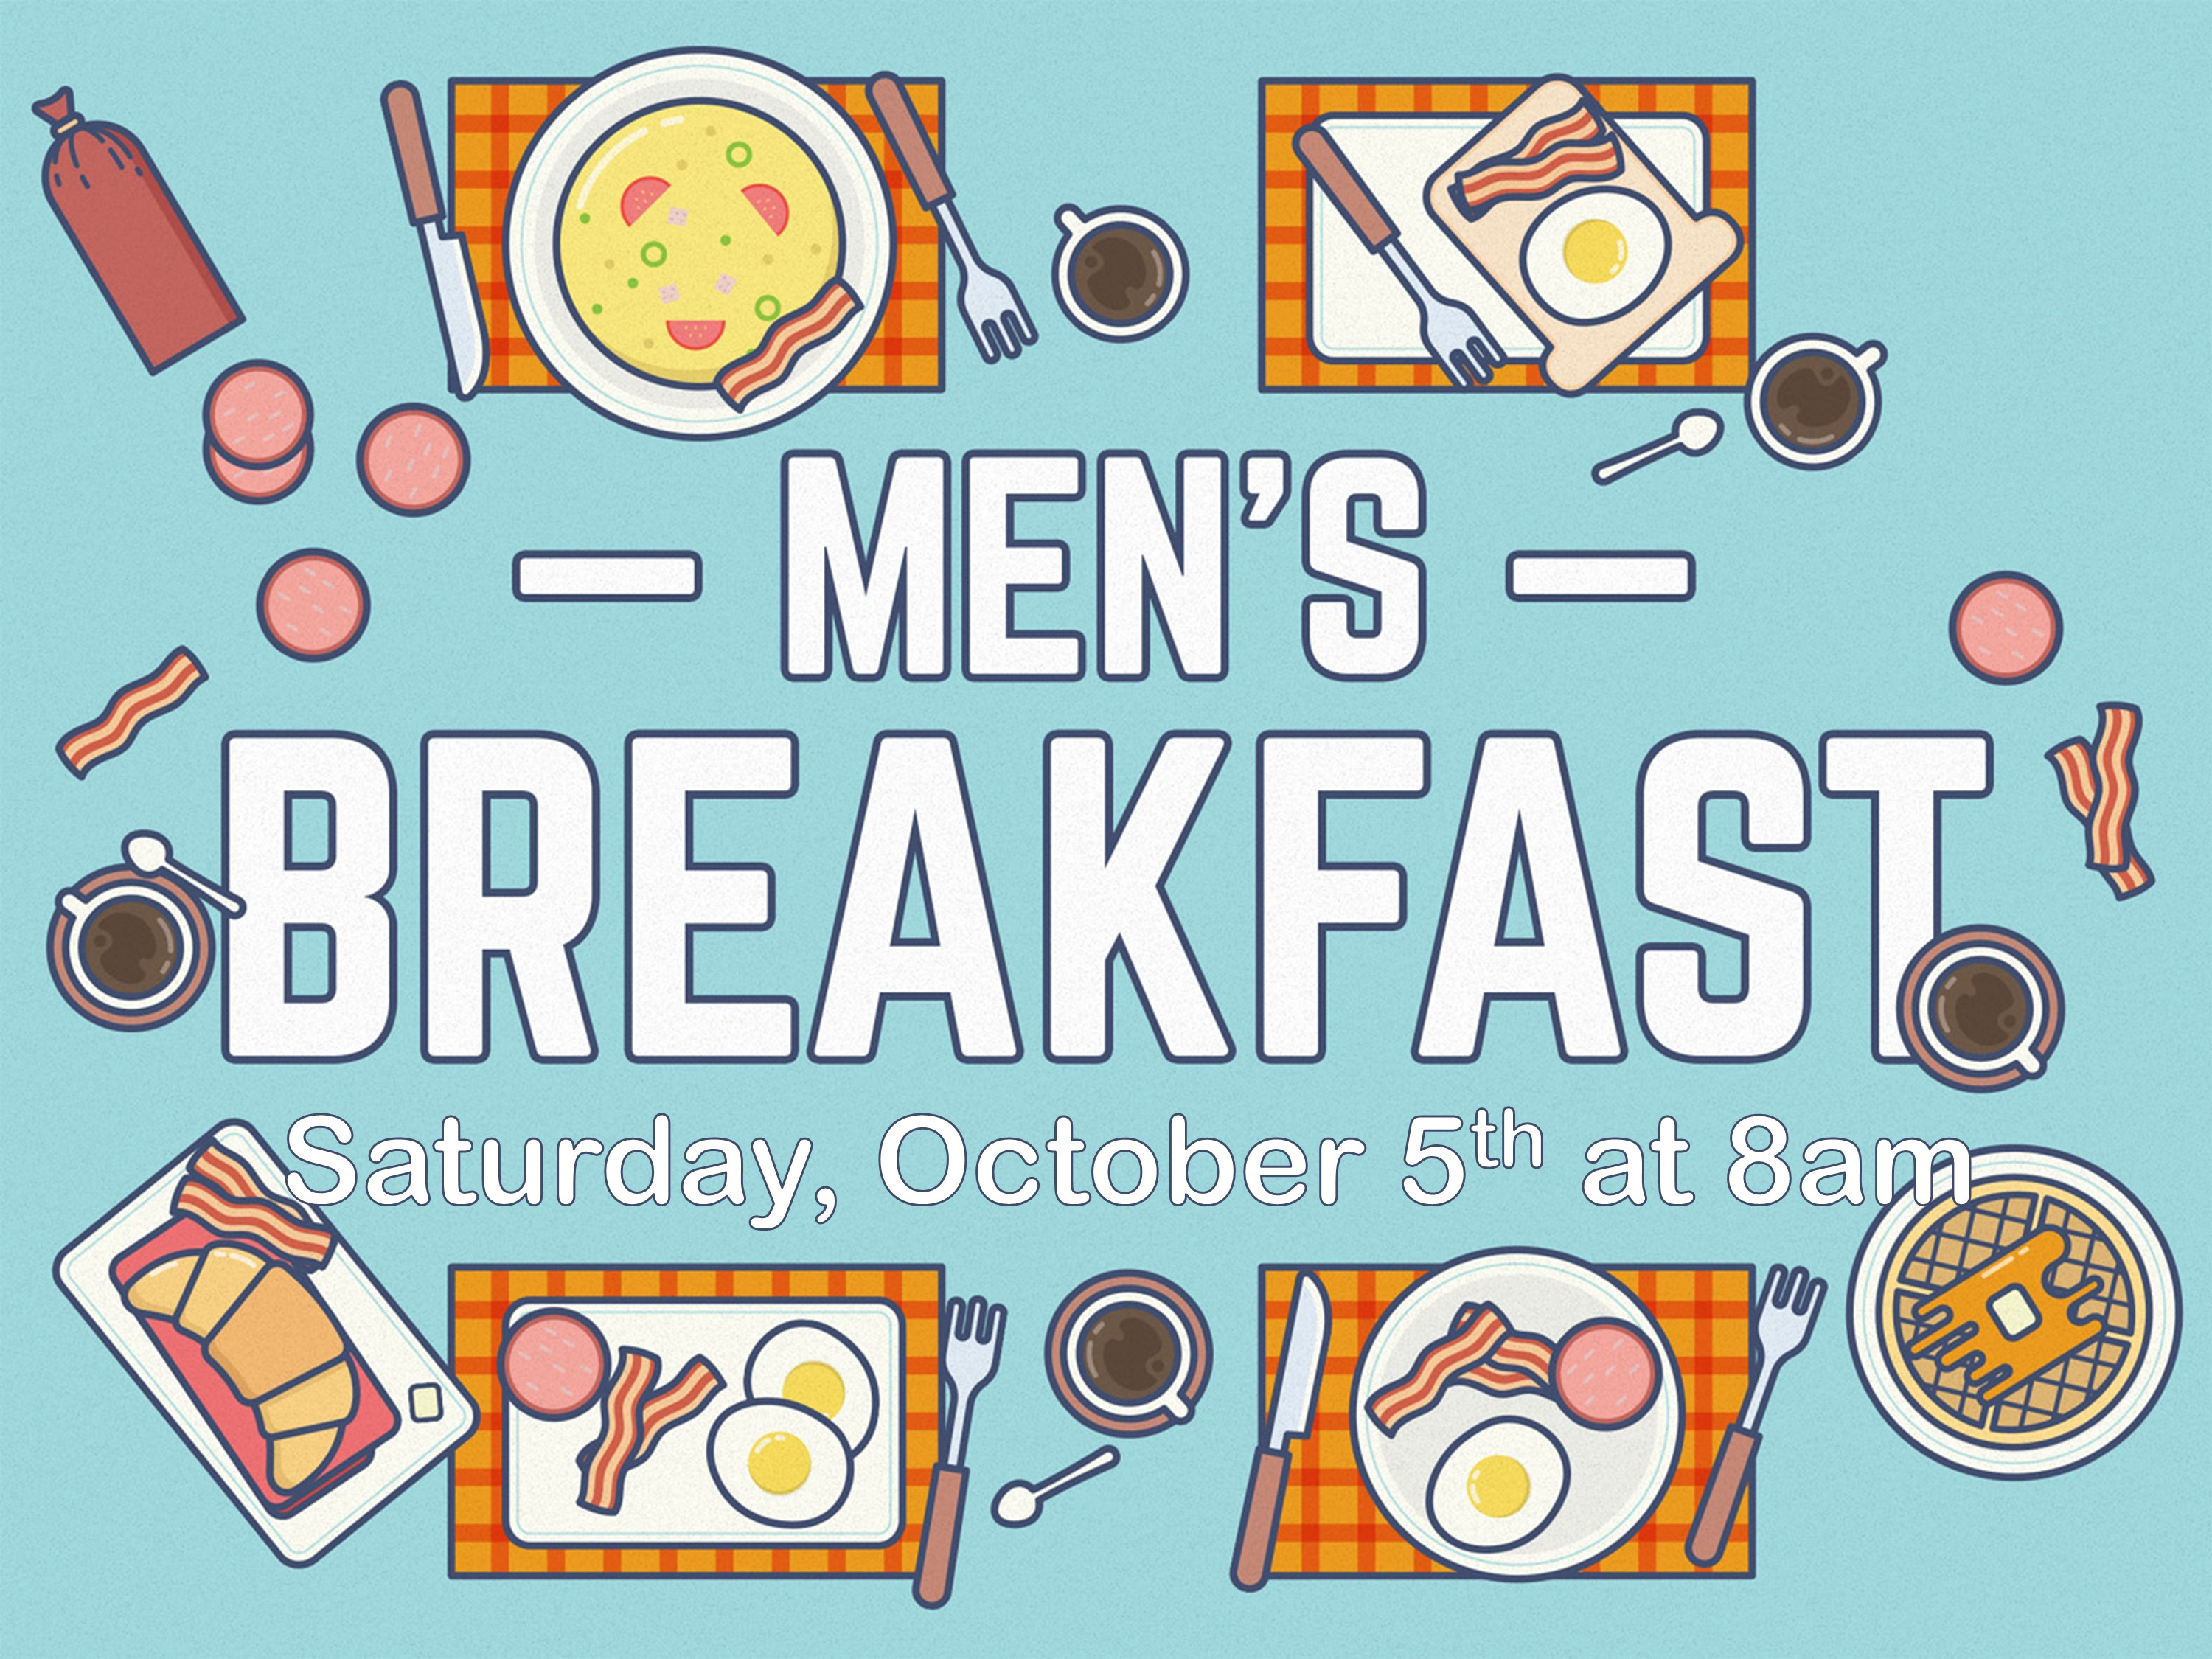 Mens breakfast 10.5.19 image